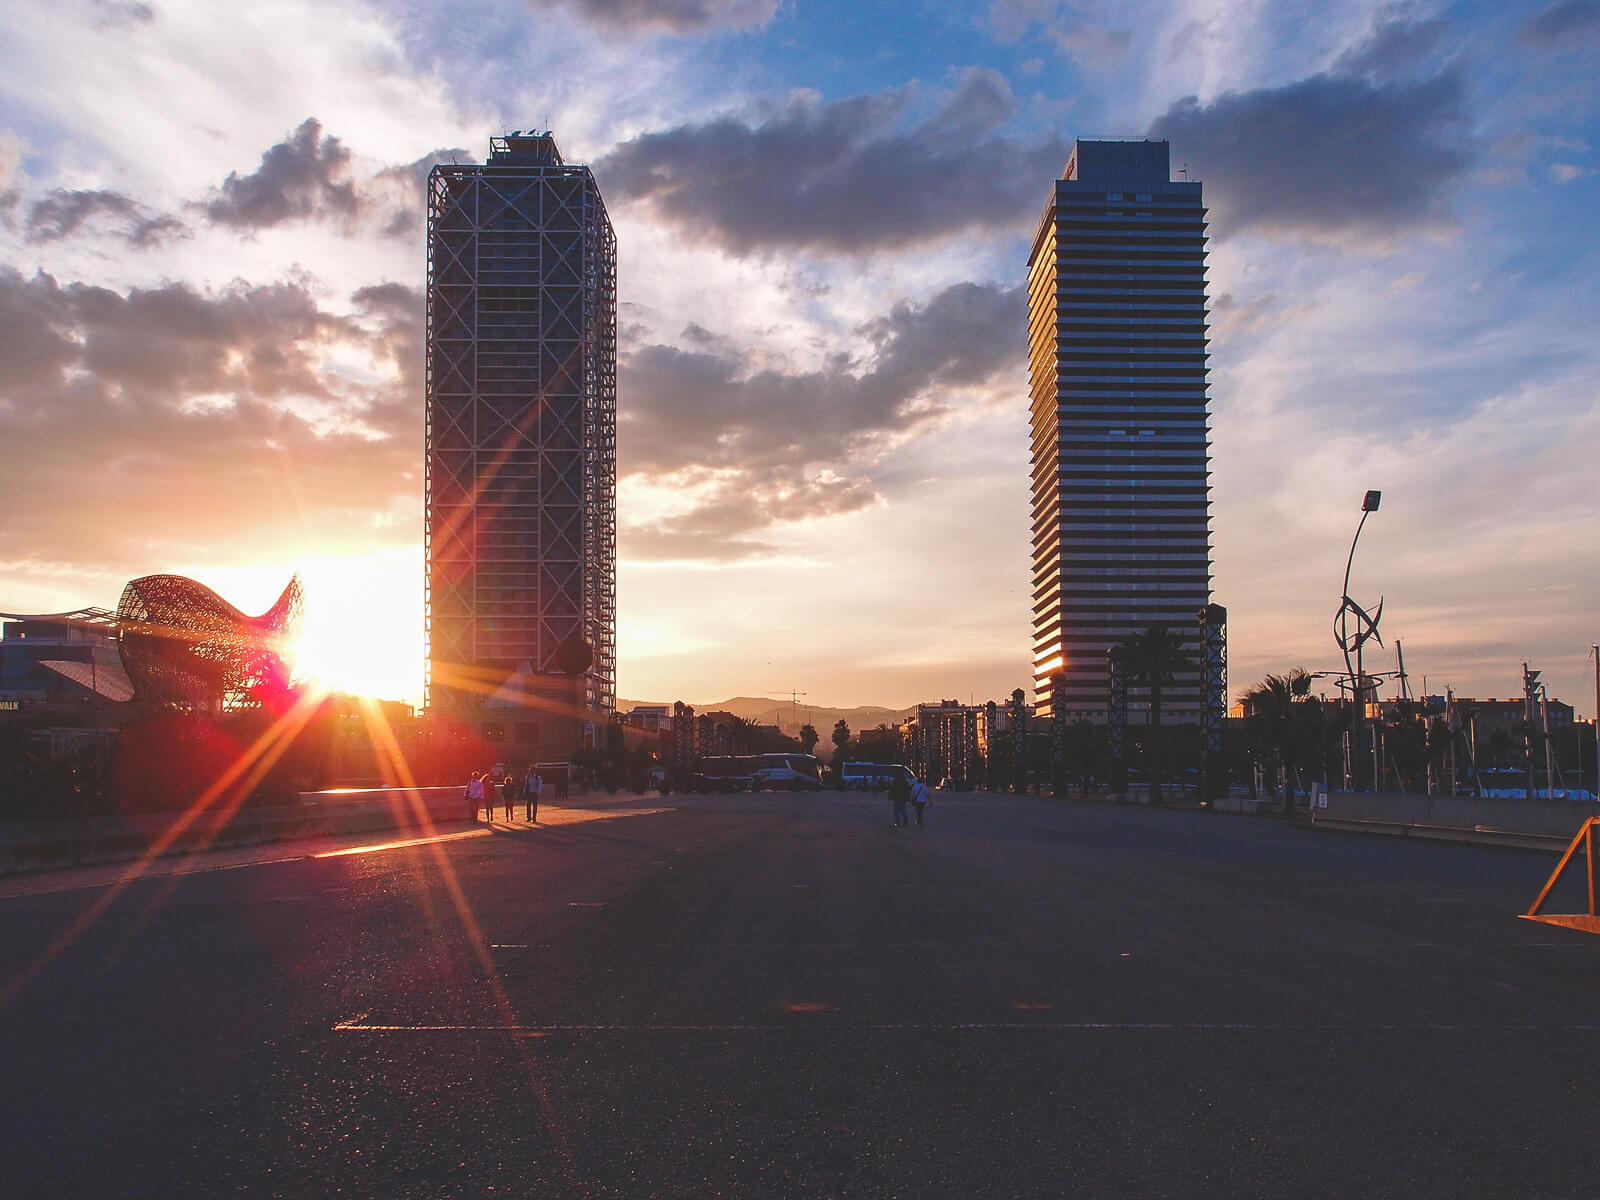 Barcelona Street Photography, marina village towers sunset